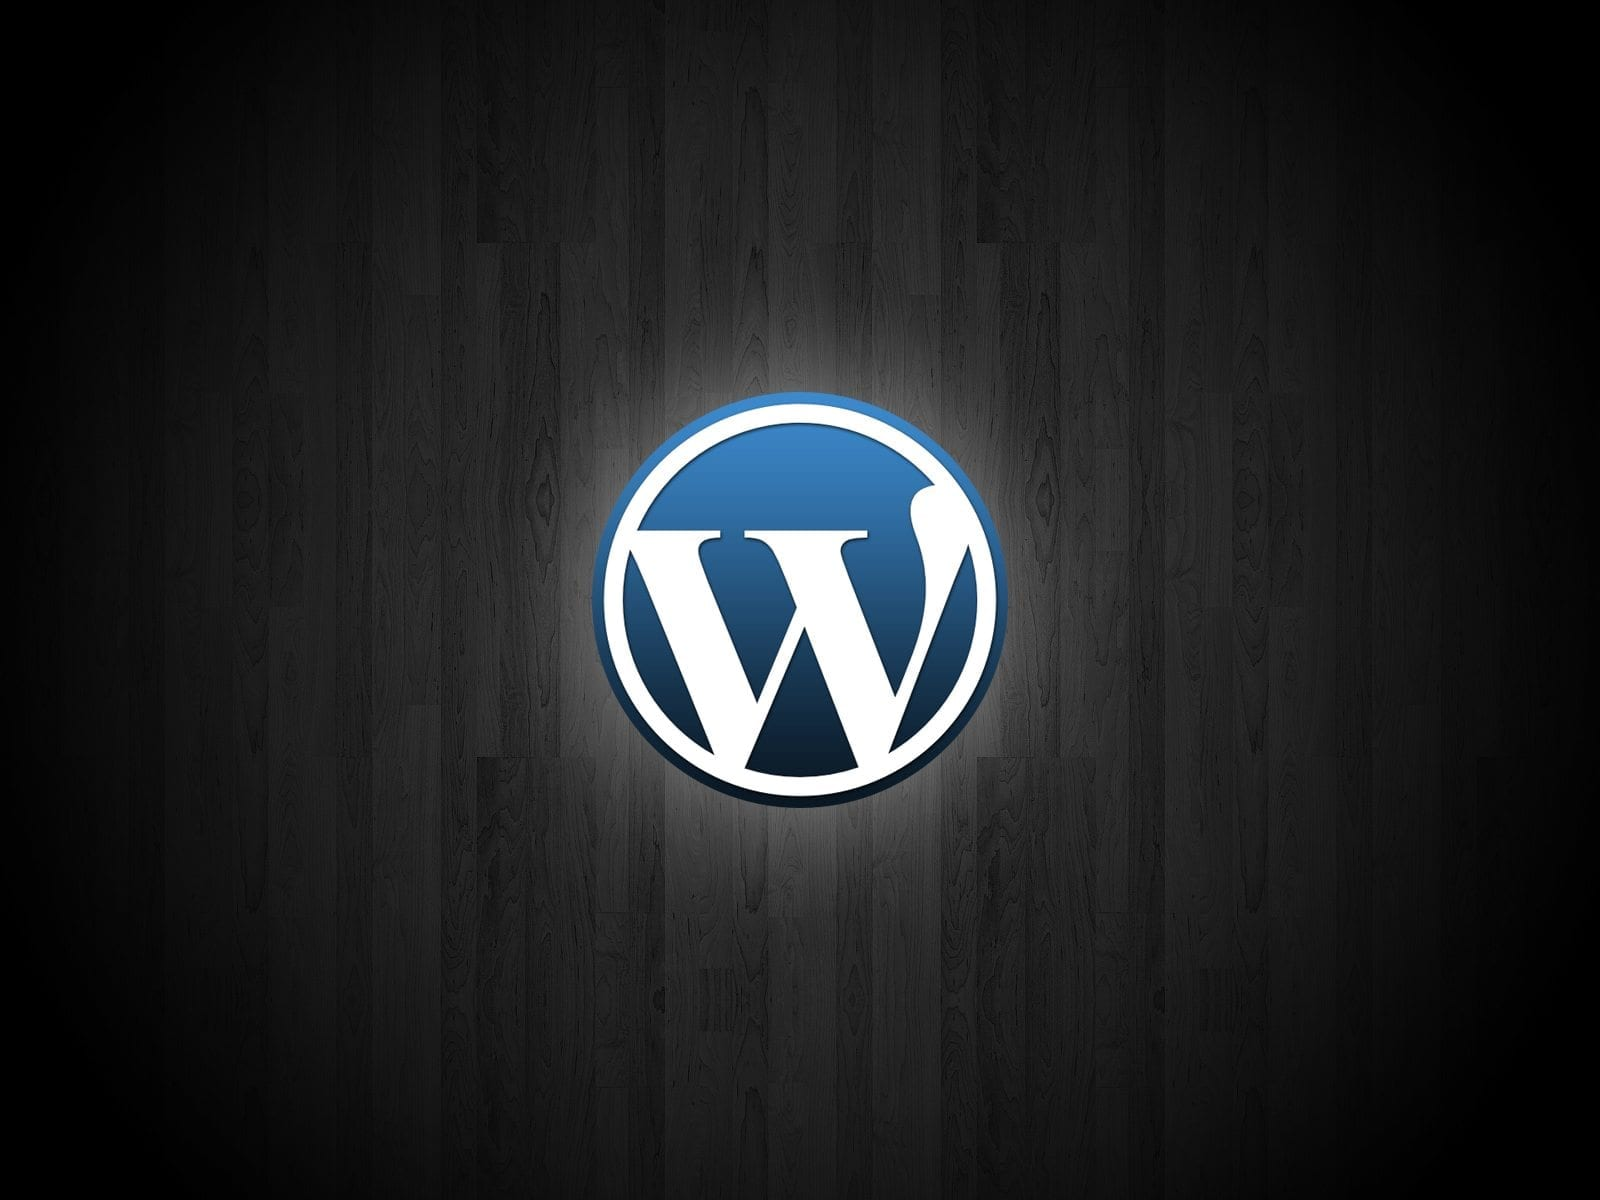 Wordpress_Wallpaper1